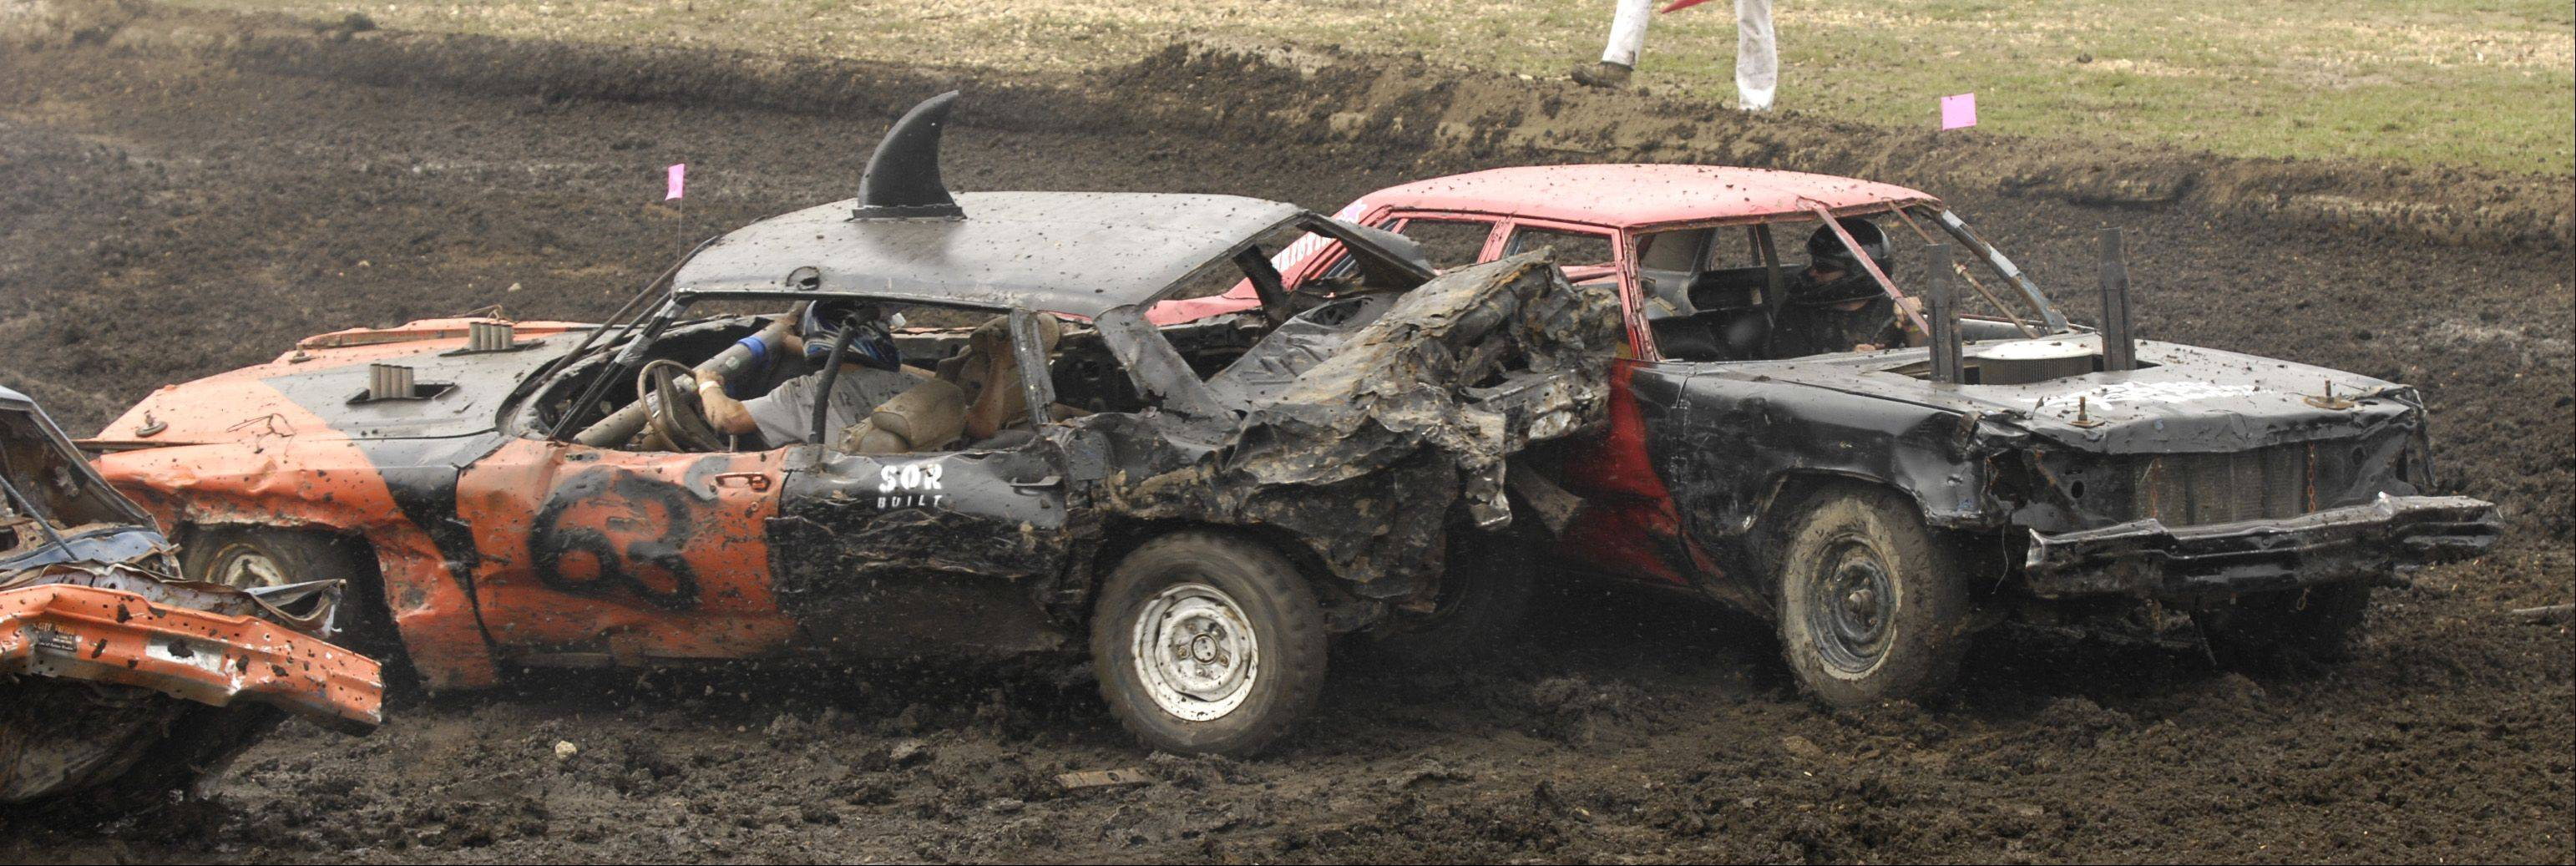 Competitors hit each other hard during the annual demolition derby Sunday at the DuPage County Fair.